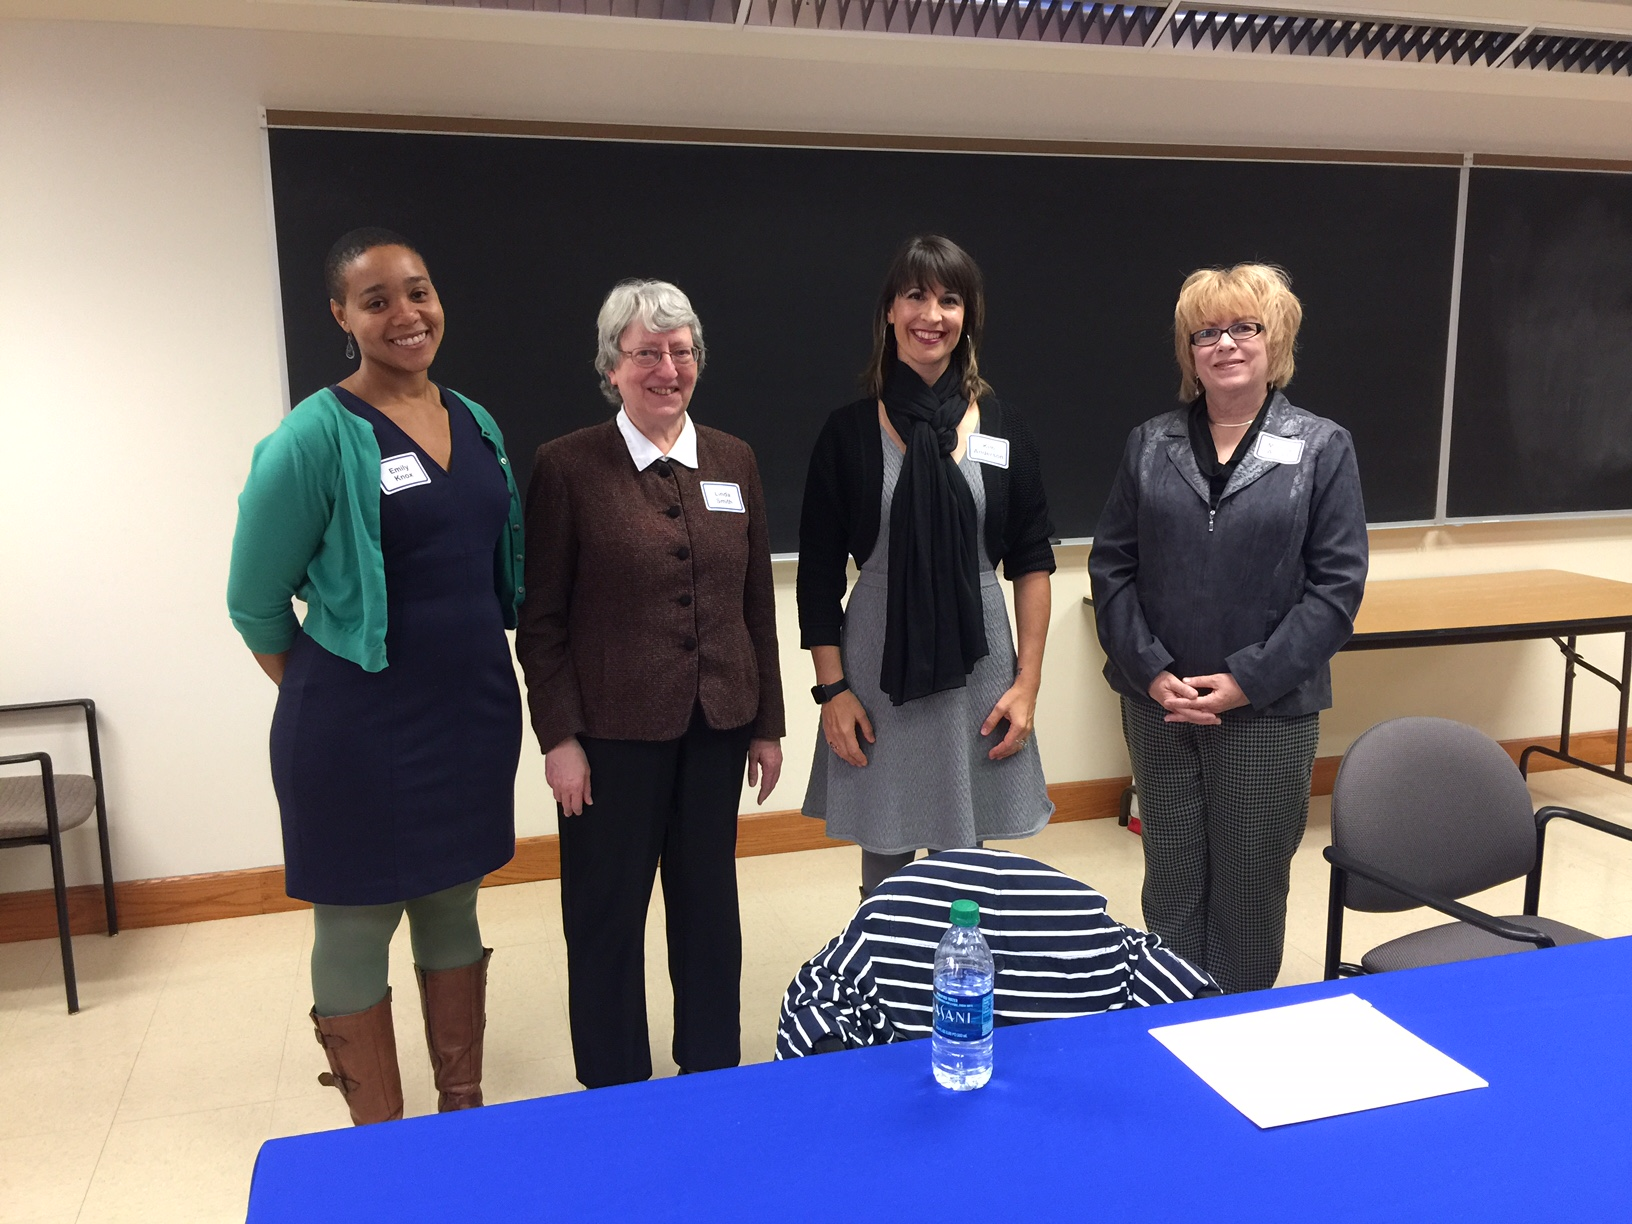 From left to right: Alpha Chapter Officers 2016-2017 Emily Knox, Faculty Advisor; Linda Smith, Secretary/Treasurer; Kim Anderson, President; Melody Allison, Past President